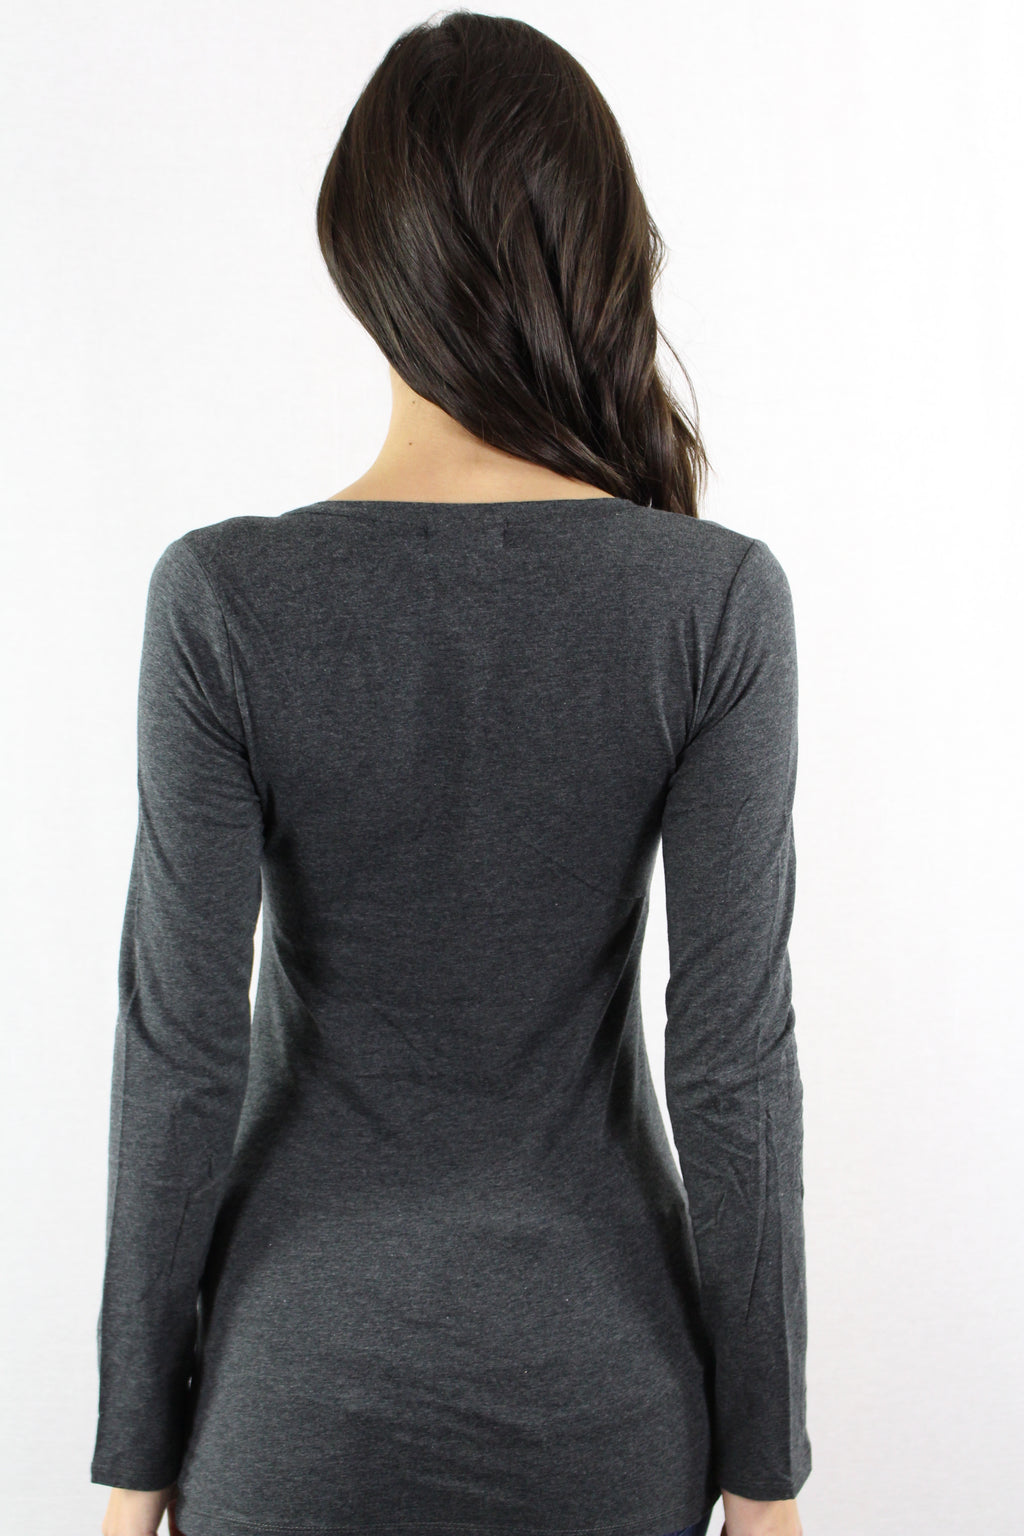 Women's V Neck Long Sleeve Fitted Top